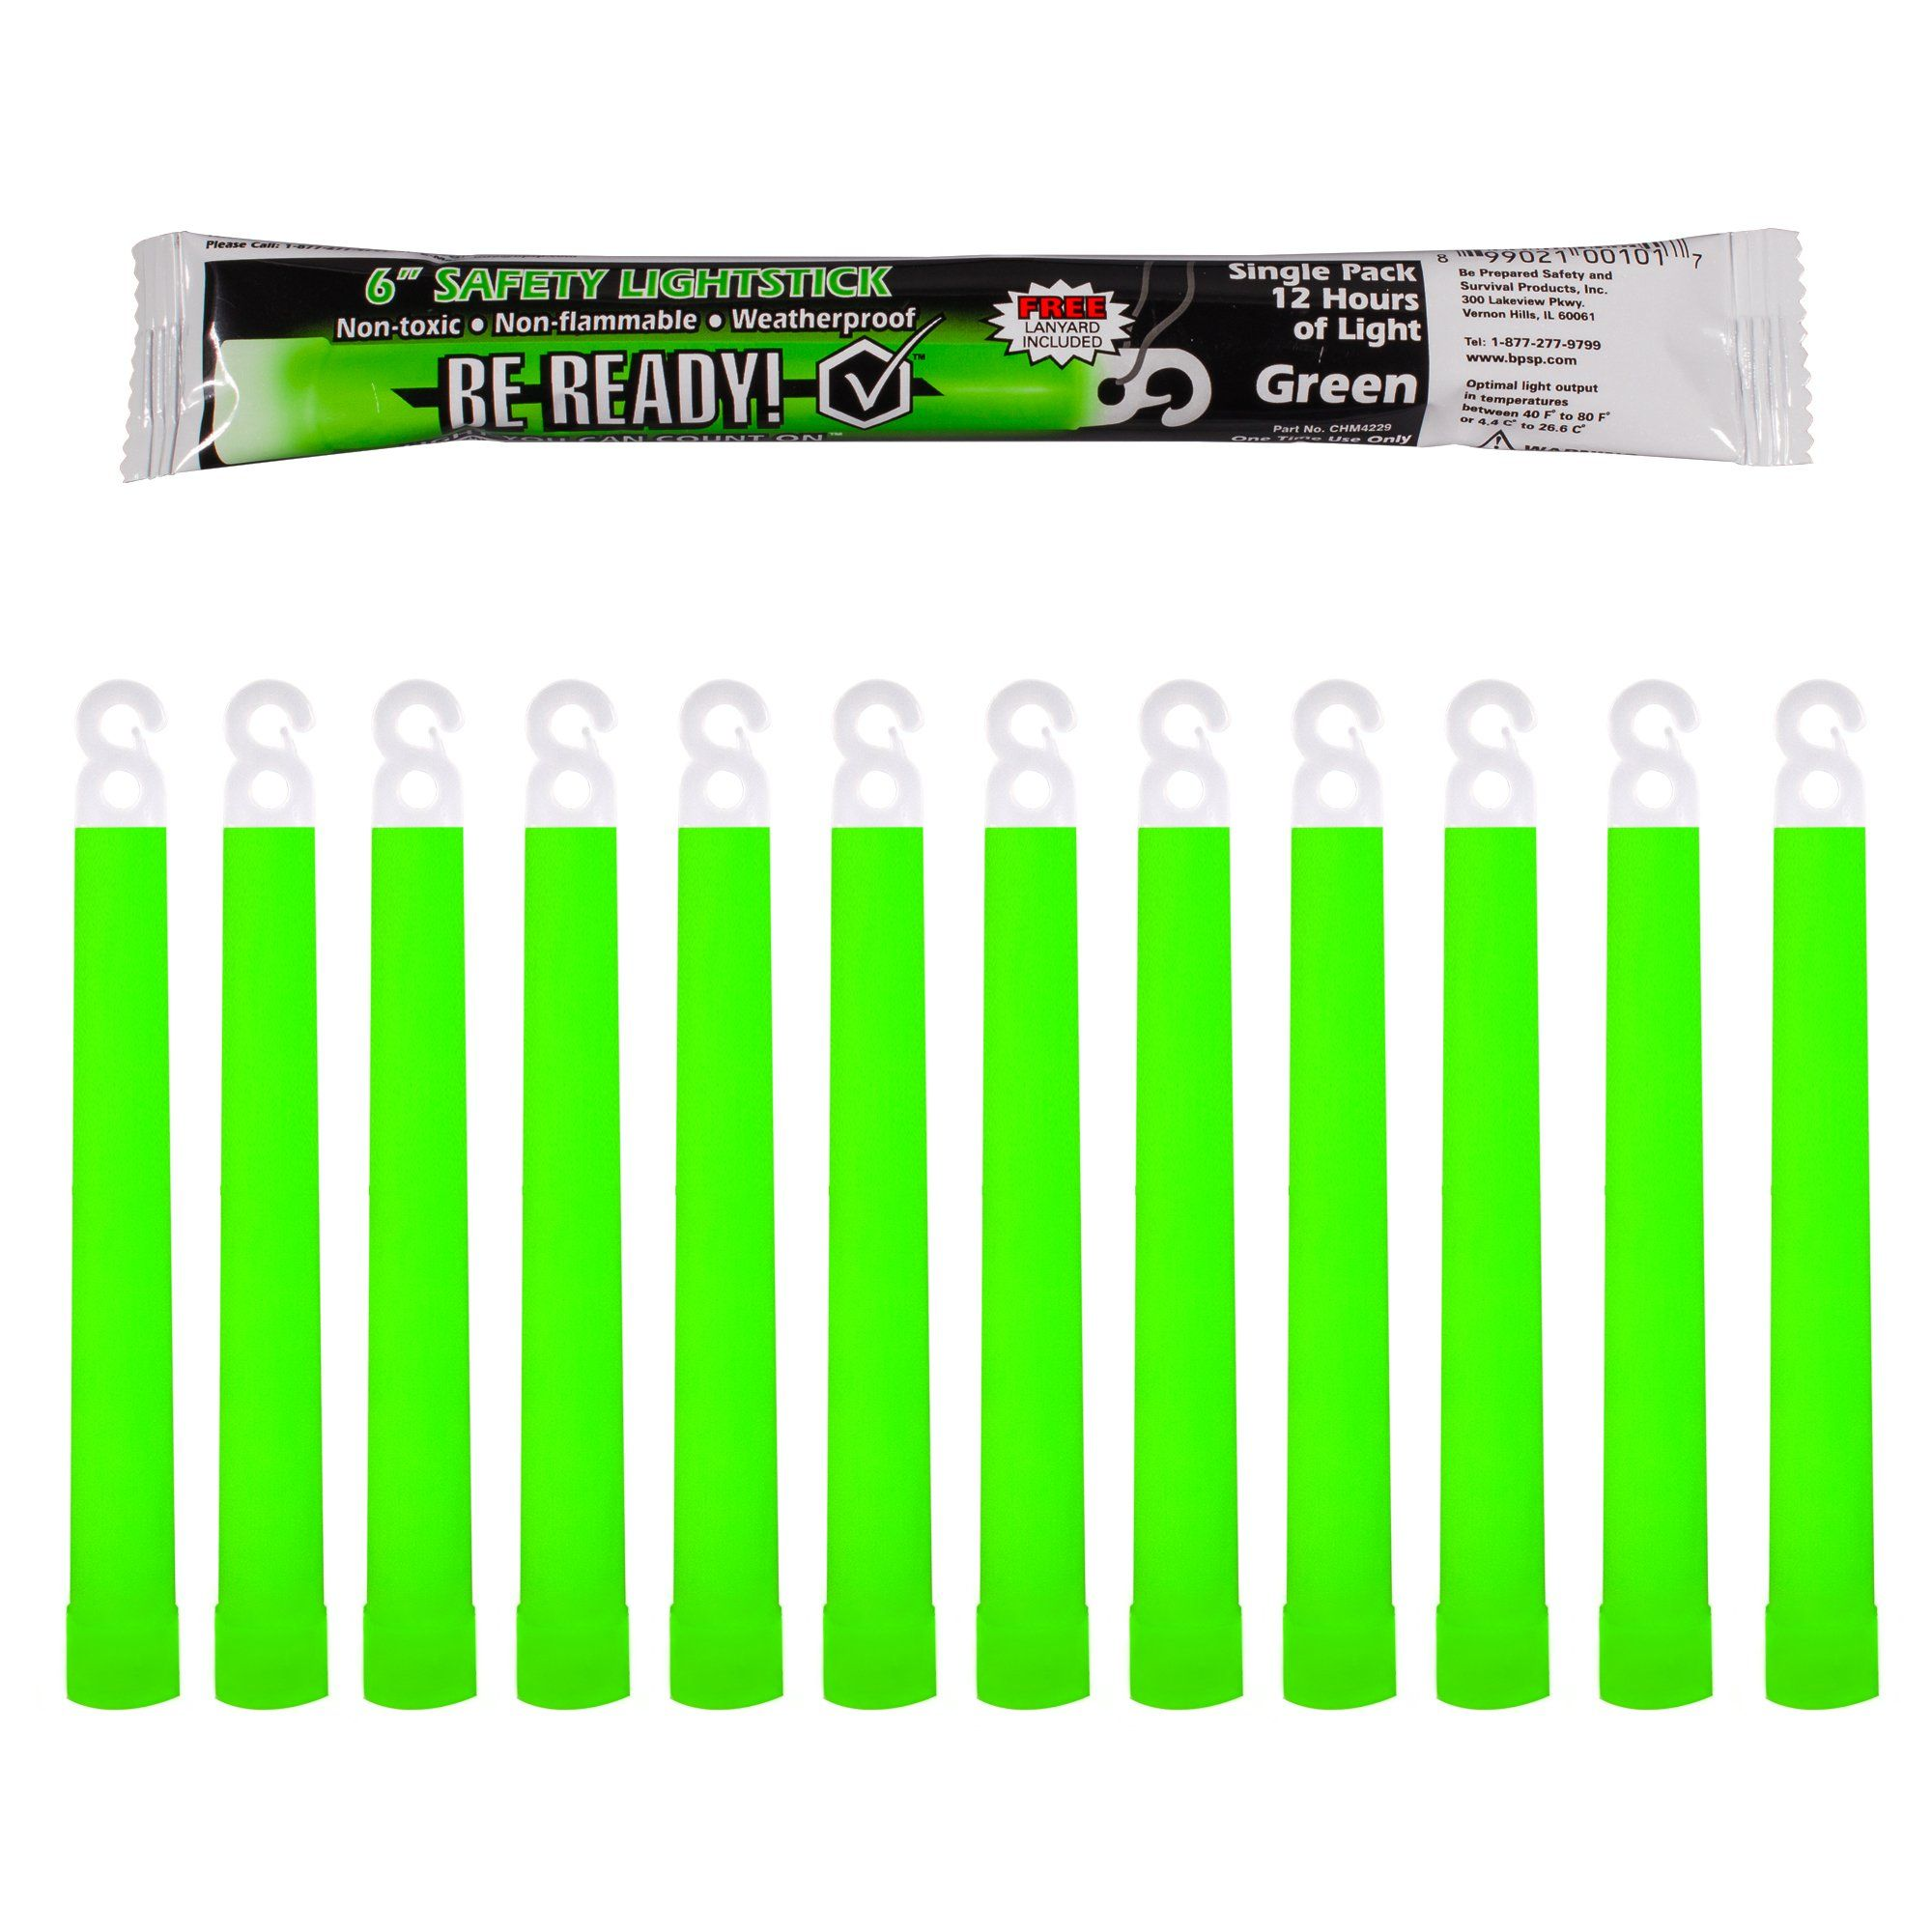 Be Ready Industrial 12 Hour Illumination Emergency Safety Chemical Light Glow Sticks 12 Pack Green Check This Awe Chemical Light Tactical Light Glow Sticks